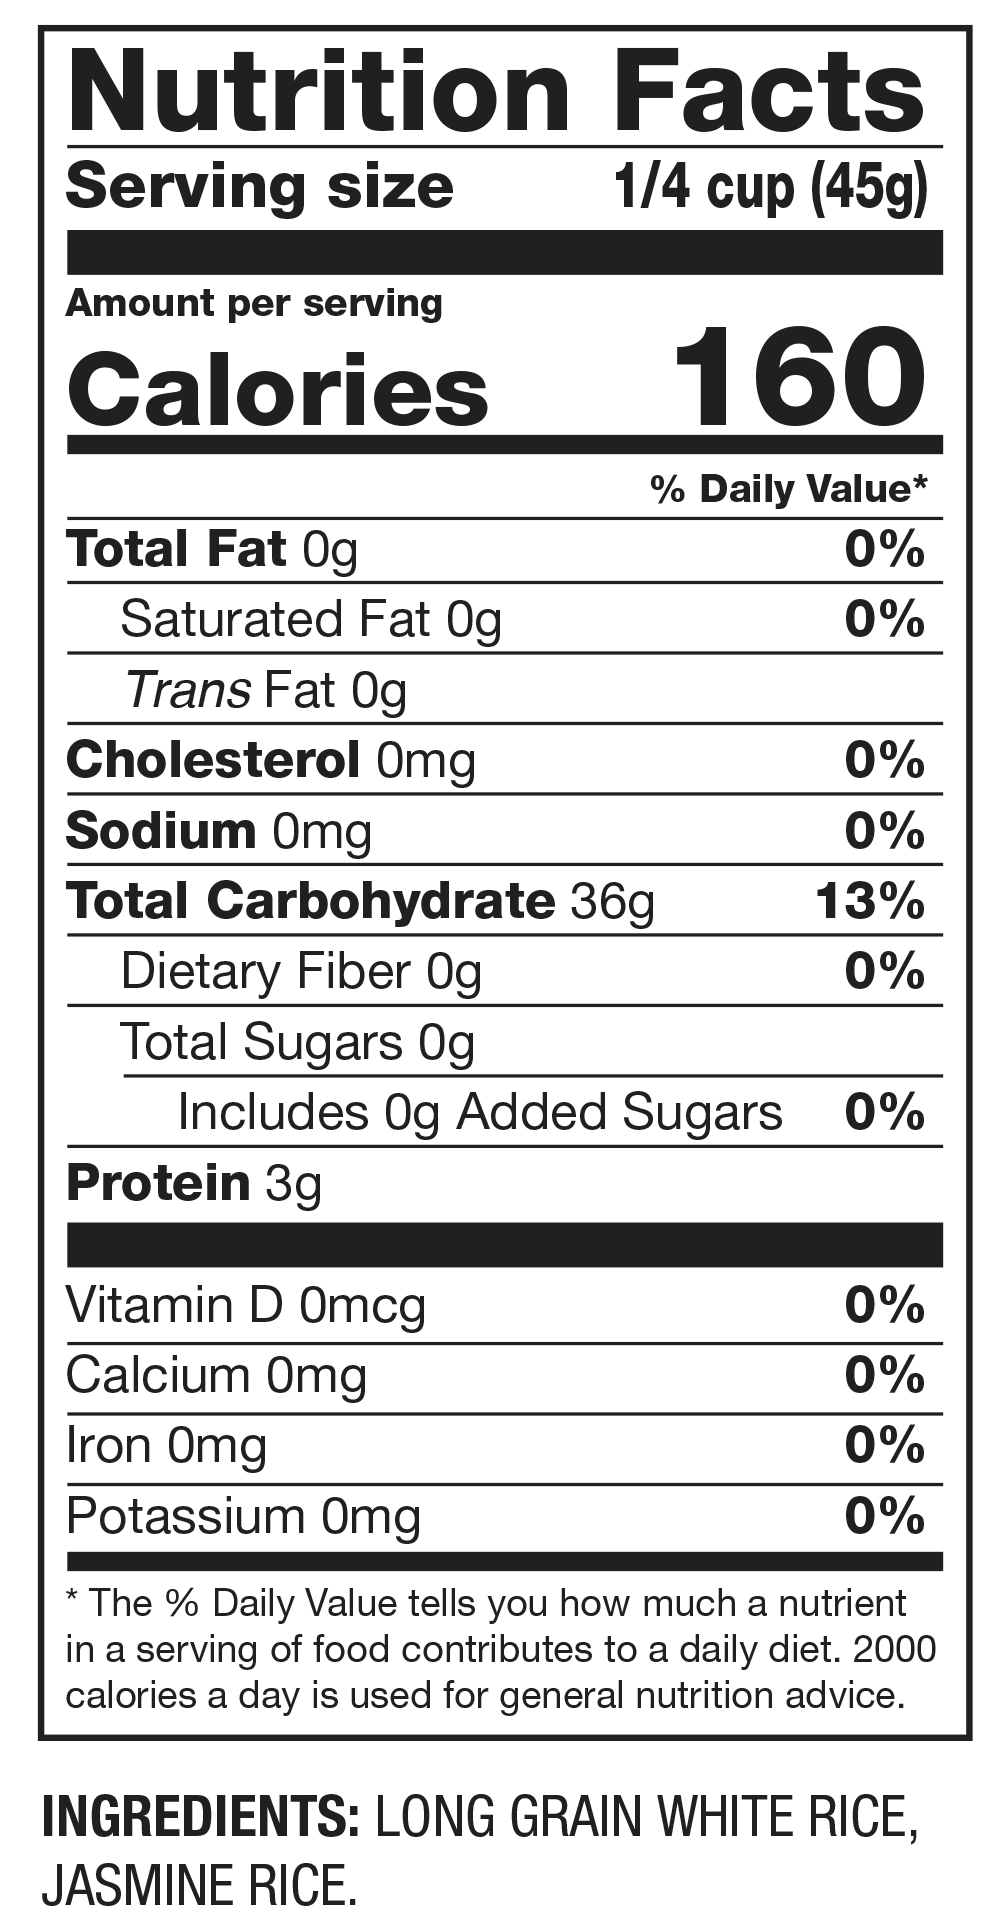 Nutrition Facts Authentic Grains for Fried Rice: Long Grain & Jasmine Rice